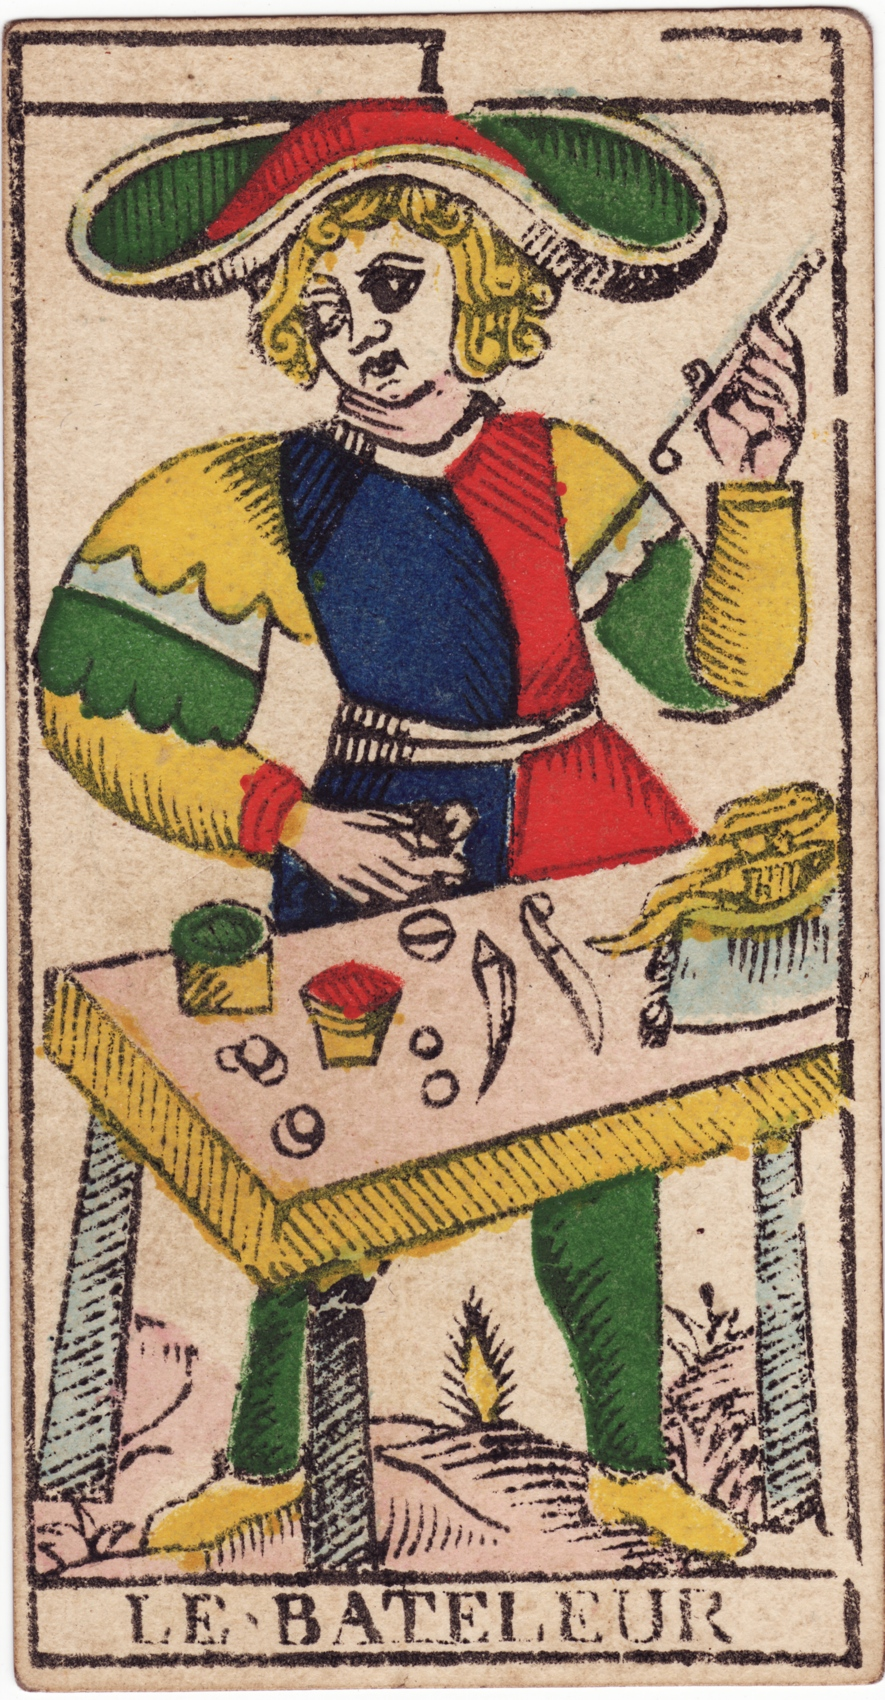 The  Magician  for the  Tarot de Marseille , an influential deck that may have originated as early as the 15th century.